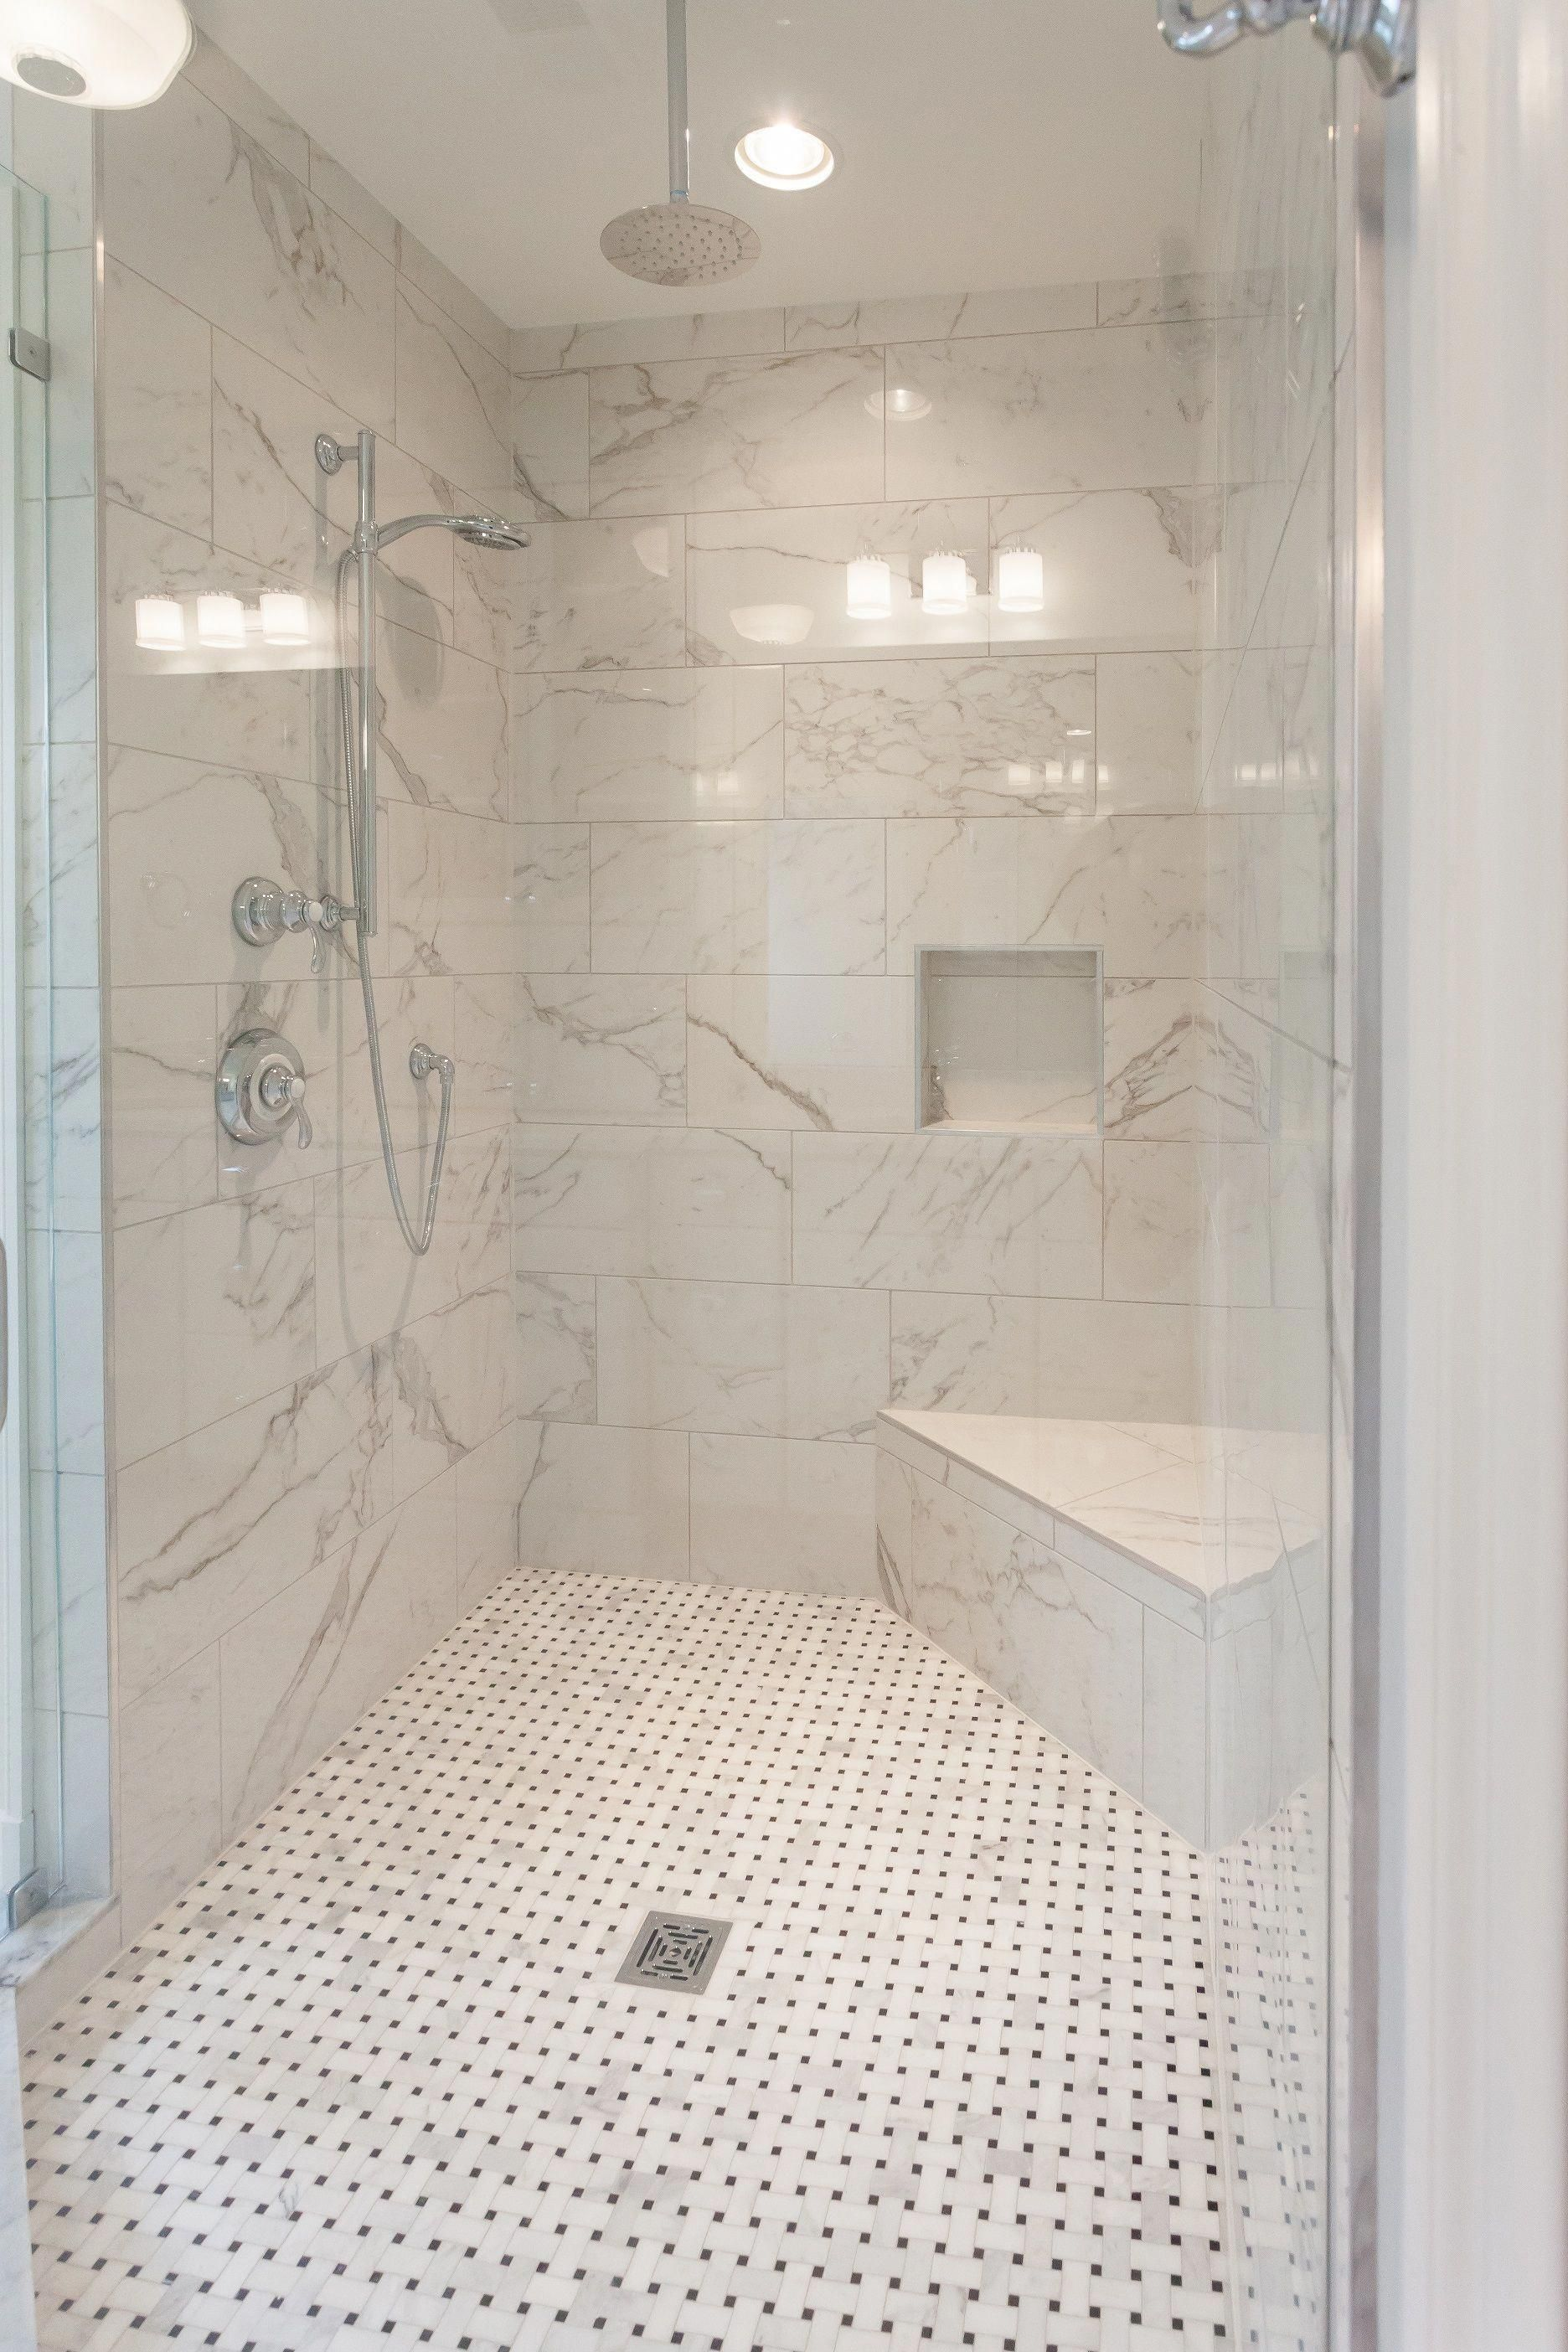 Best Walk In Showers In Small Bathrooms On A Budget Walkinshowerideas Showerideas Bathroomideas Corner Shower Seat Small Bathroom With Shower Small Bathroom